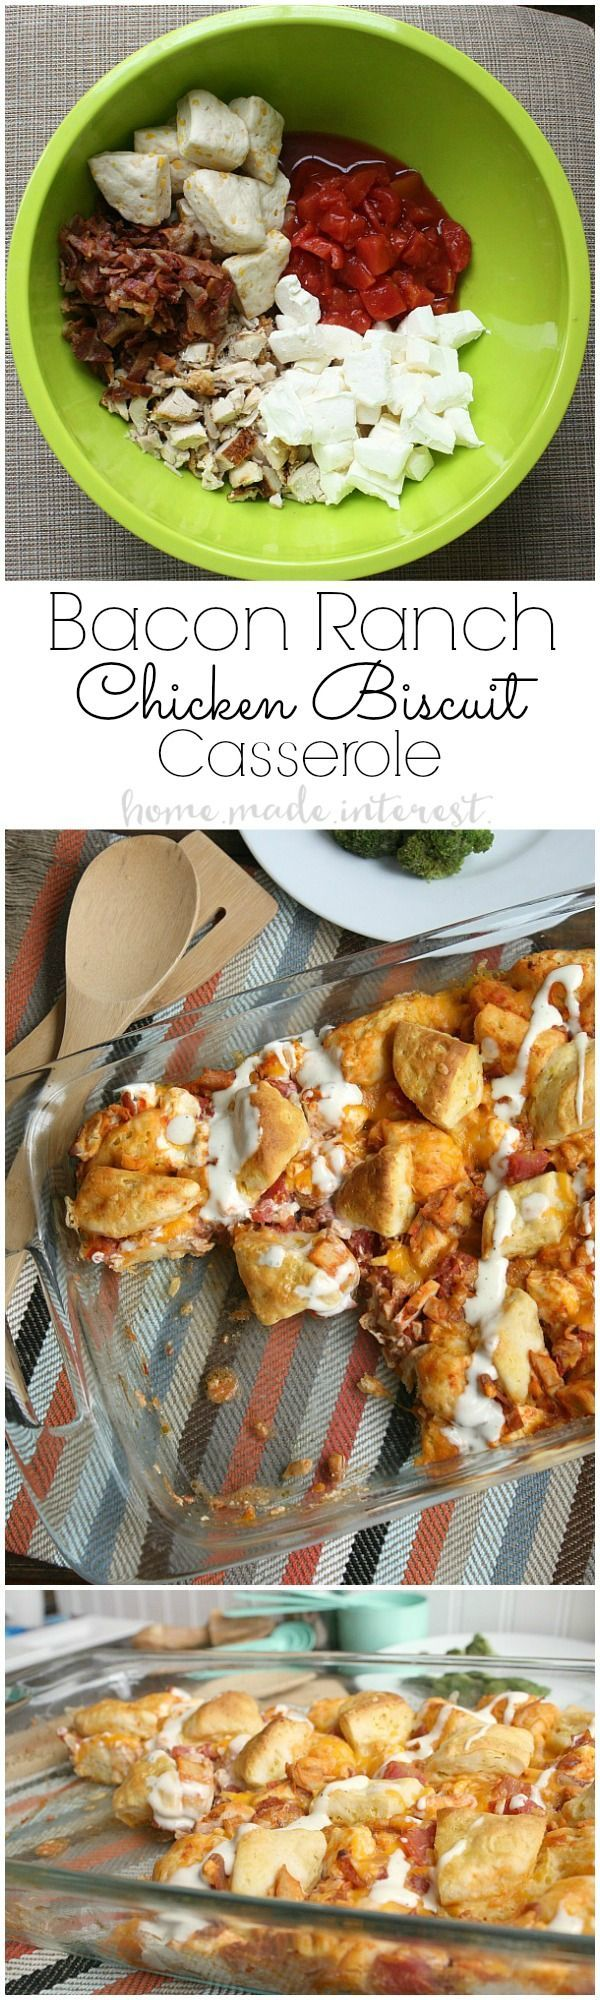 This tasty chicken casserole recipe is made with four of my favorite ingredients, rotisserie chicken, ranch dressing, bacon, and biscuits! #‎BeFlavorFull‬ ‪#‎ad‬